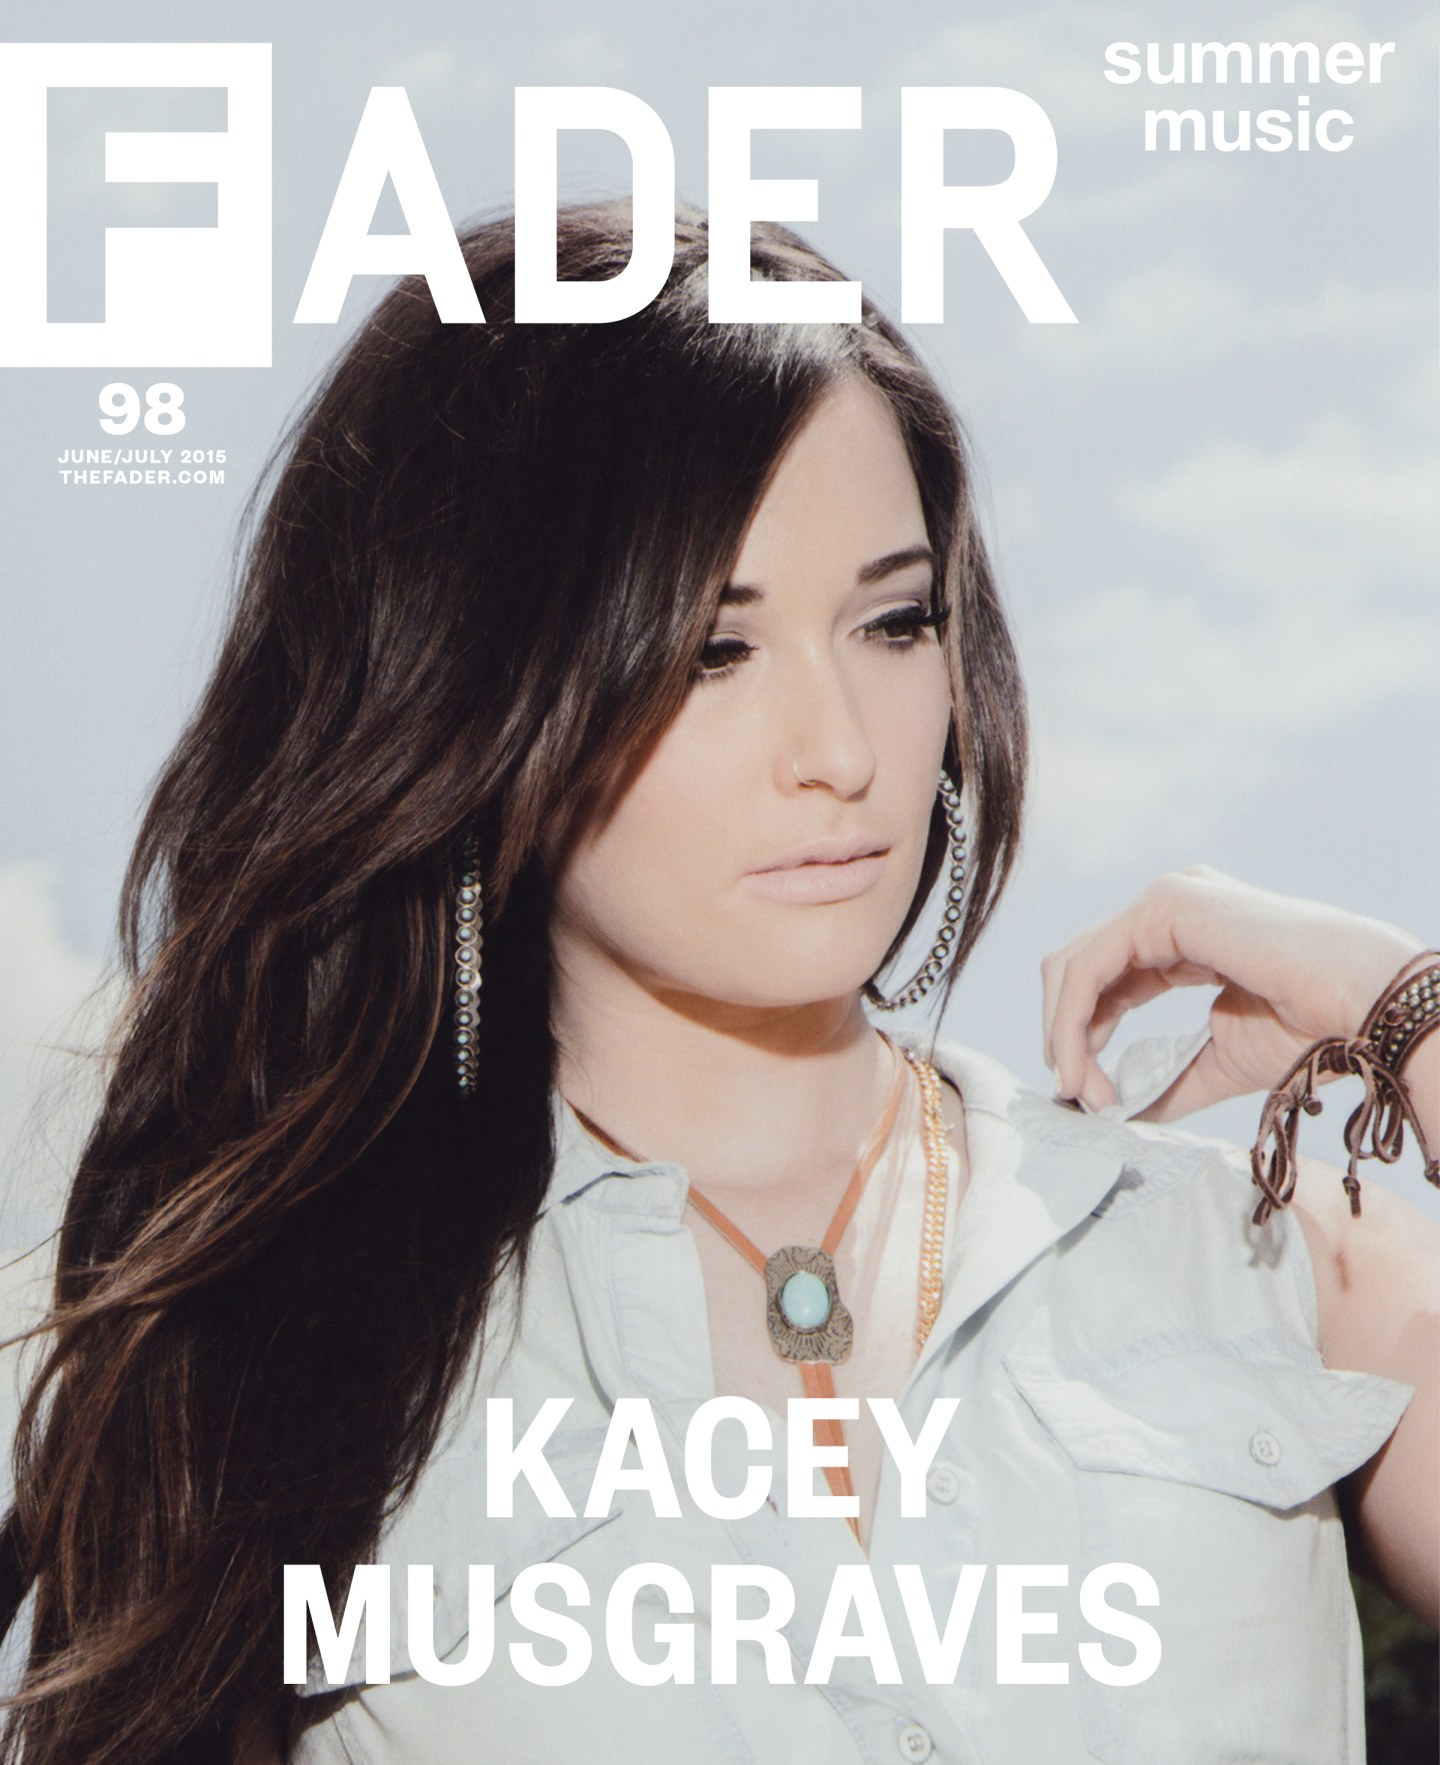 Cover Story: Kacey Musgraves